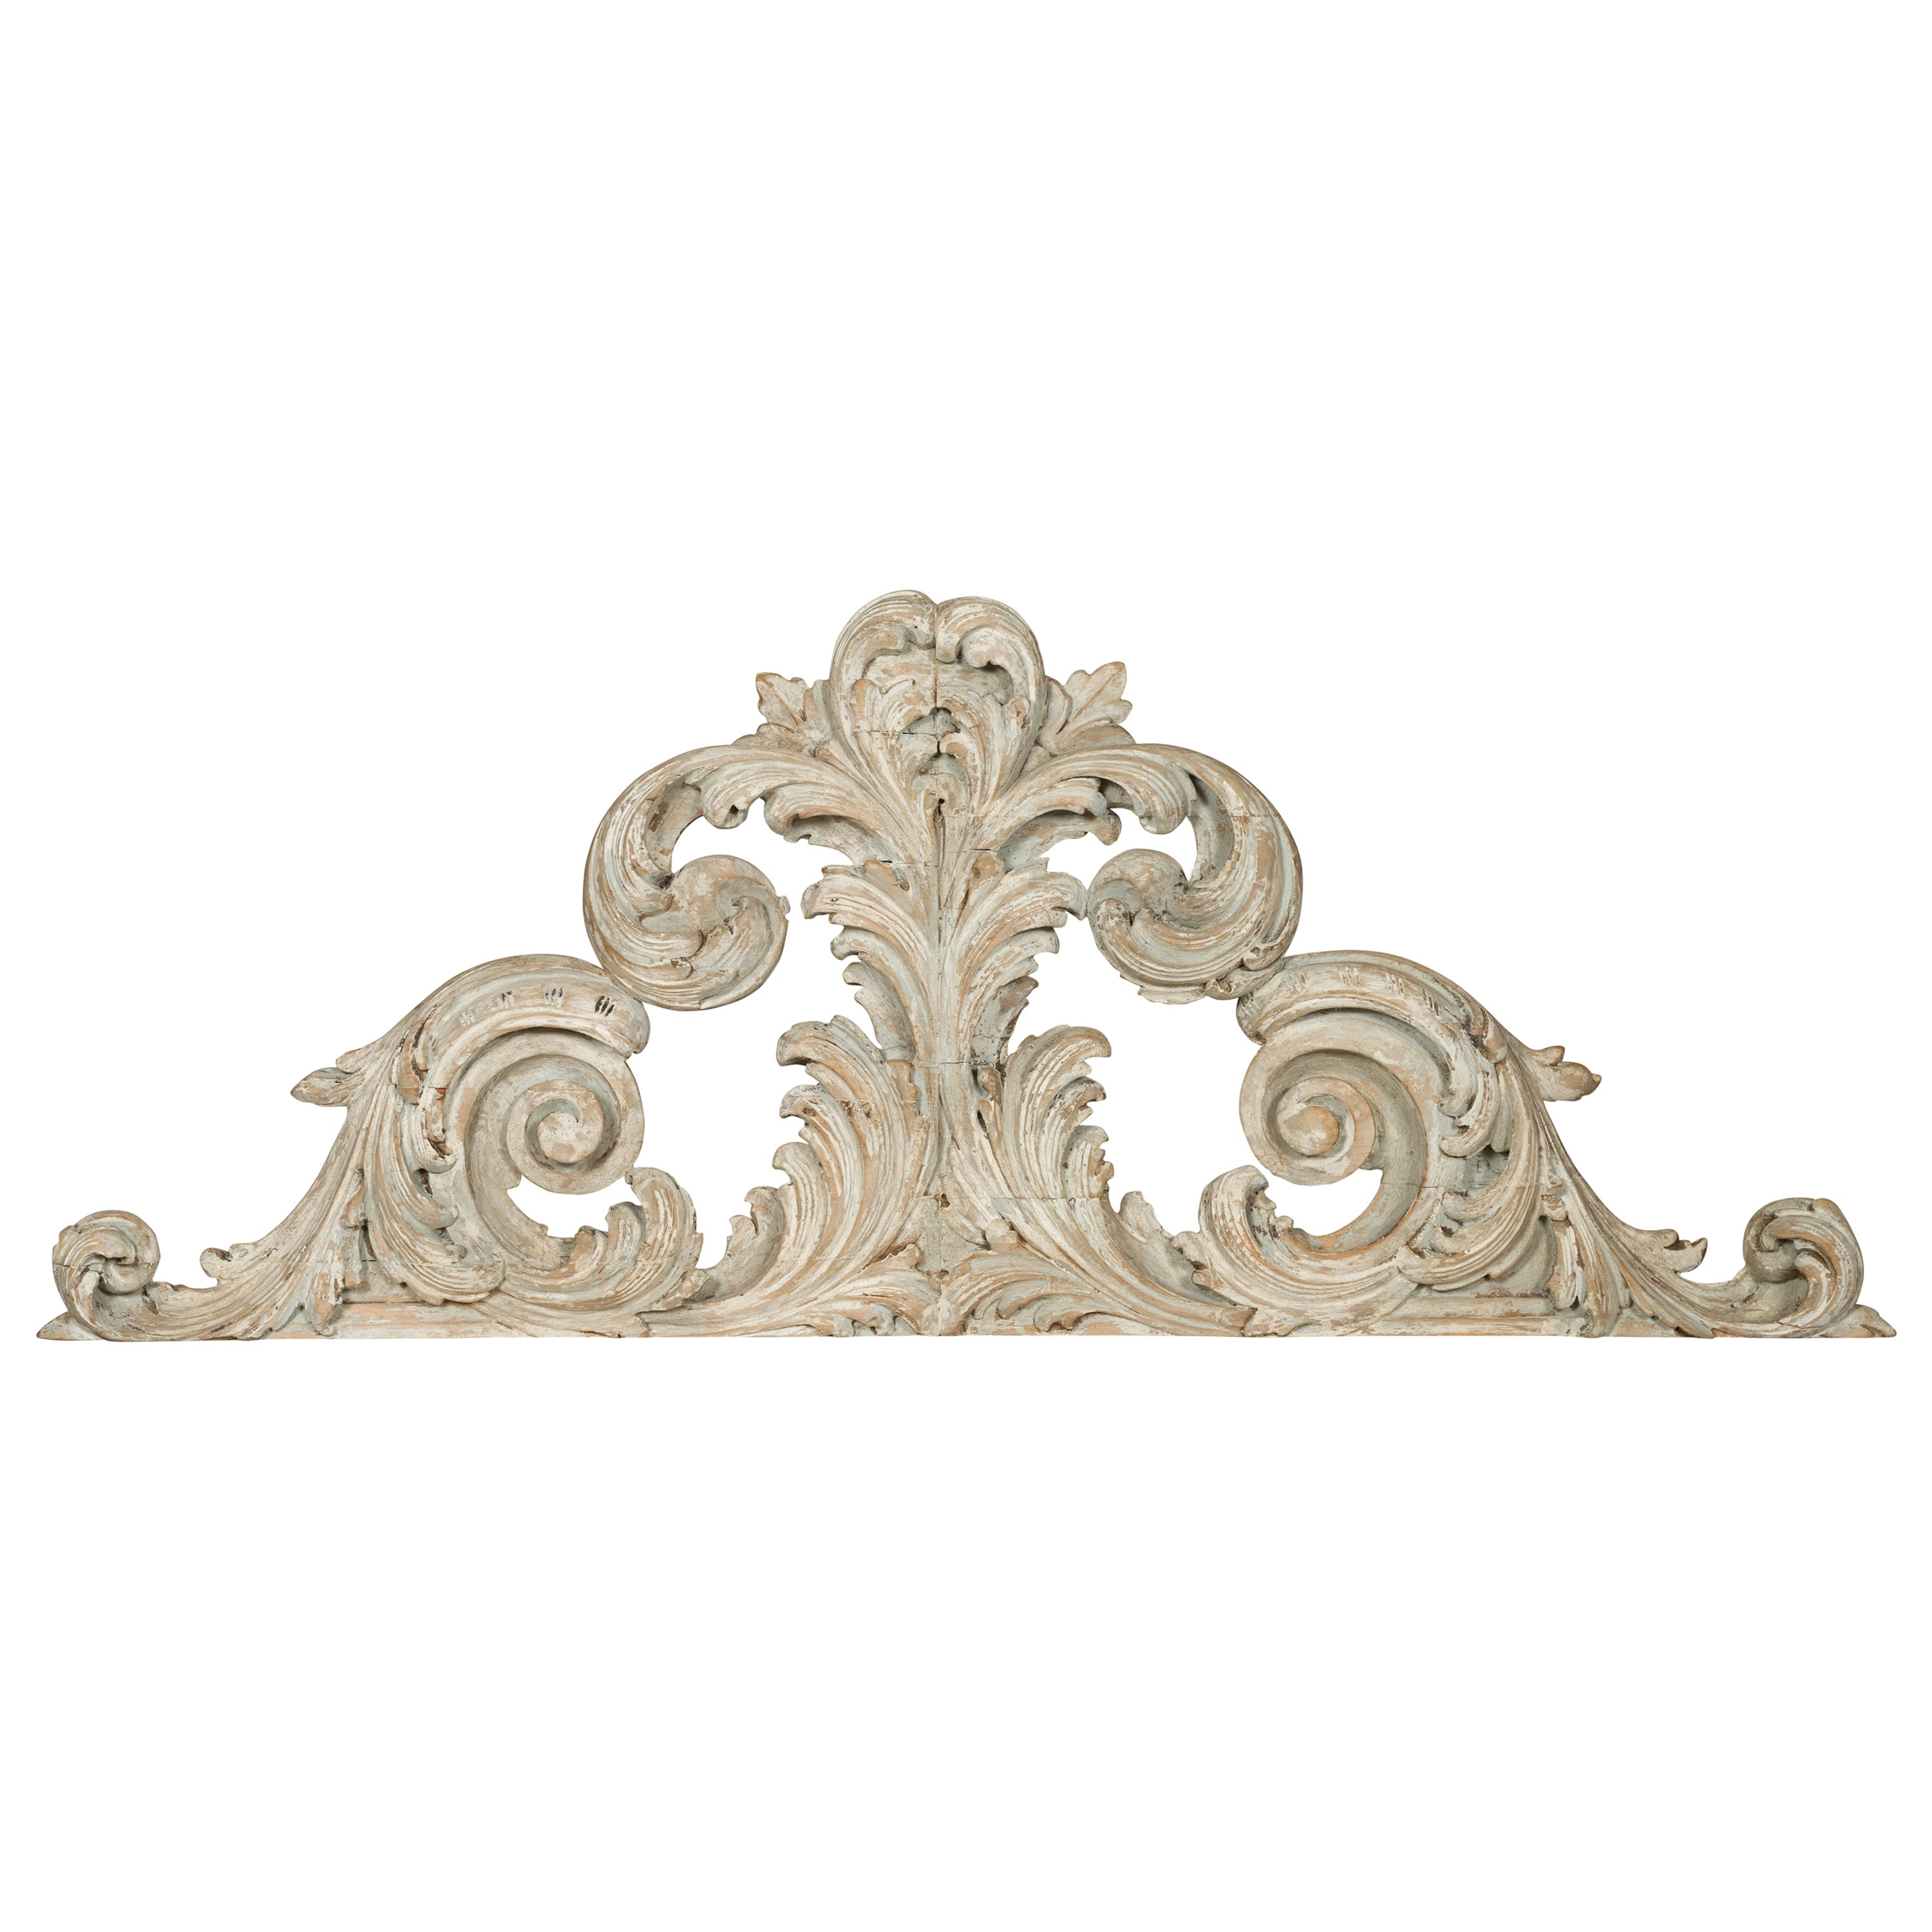 Italian 19th Century Carved and Painted Architectural Fragment with Volutes